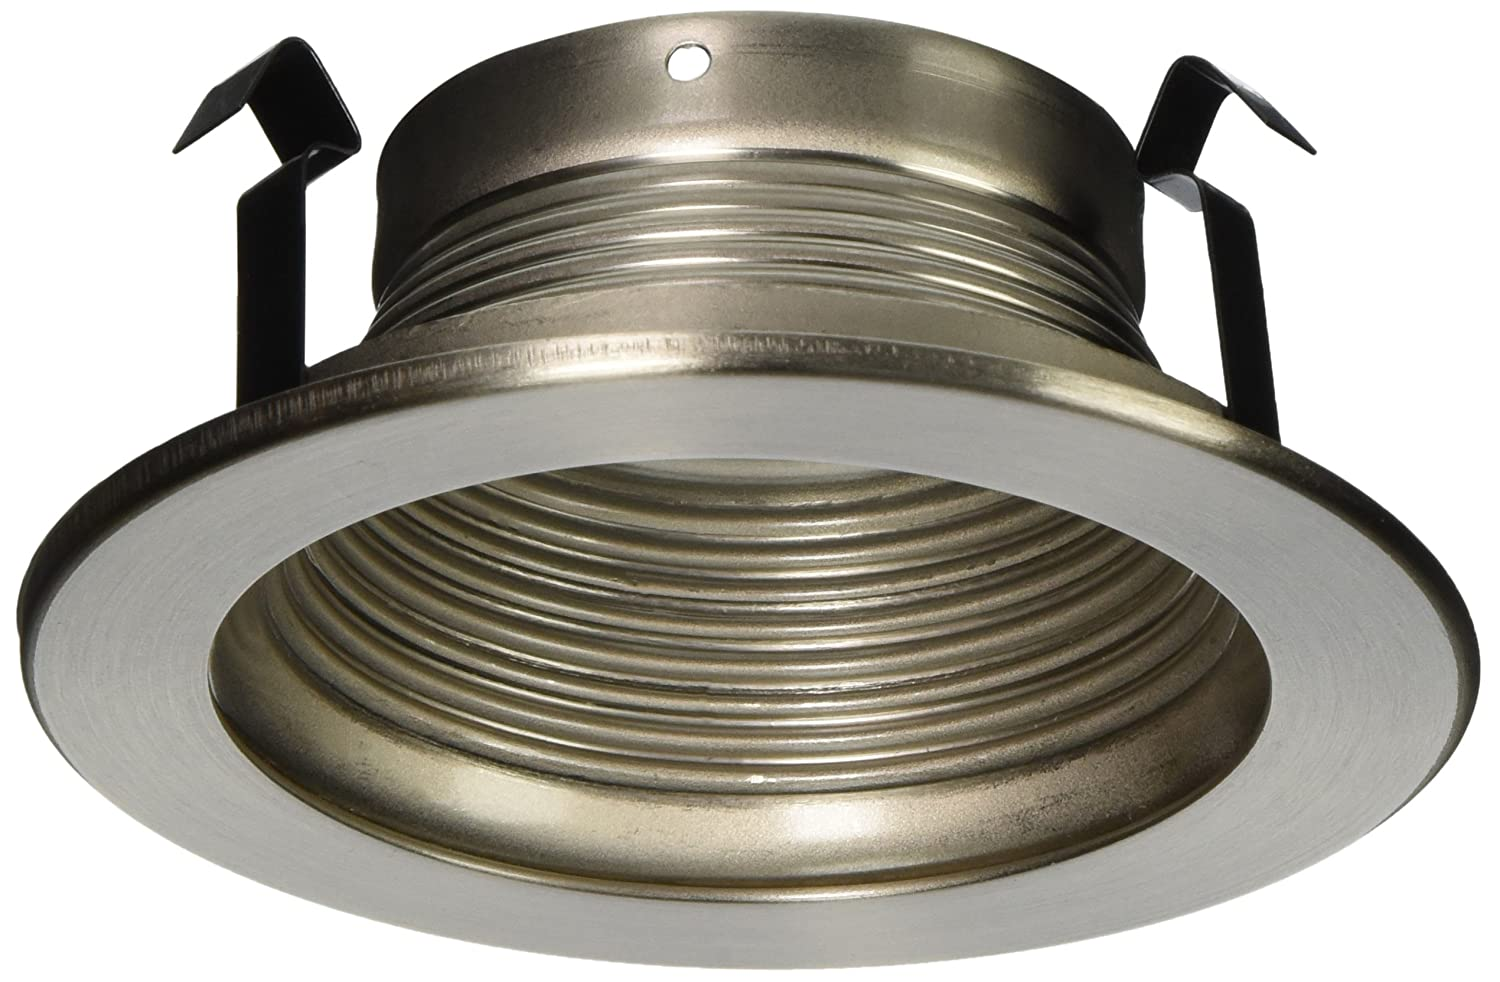 Baffle trim recessed light fixture trim for use with 4 recessed lights brushed nickel amazon com